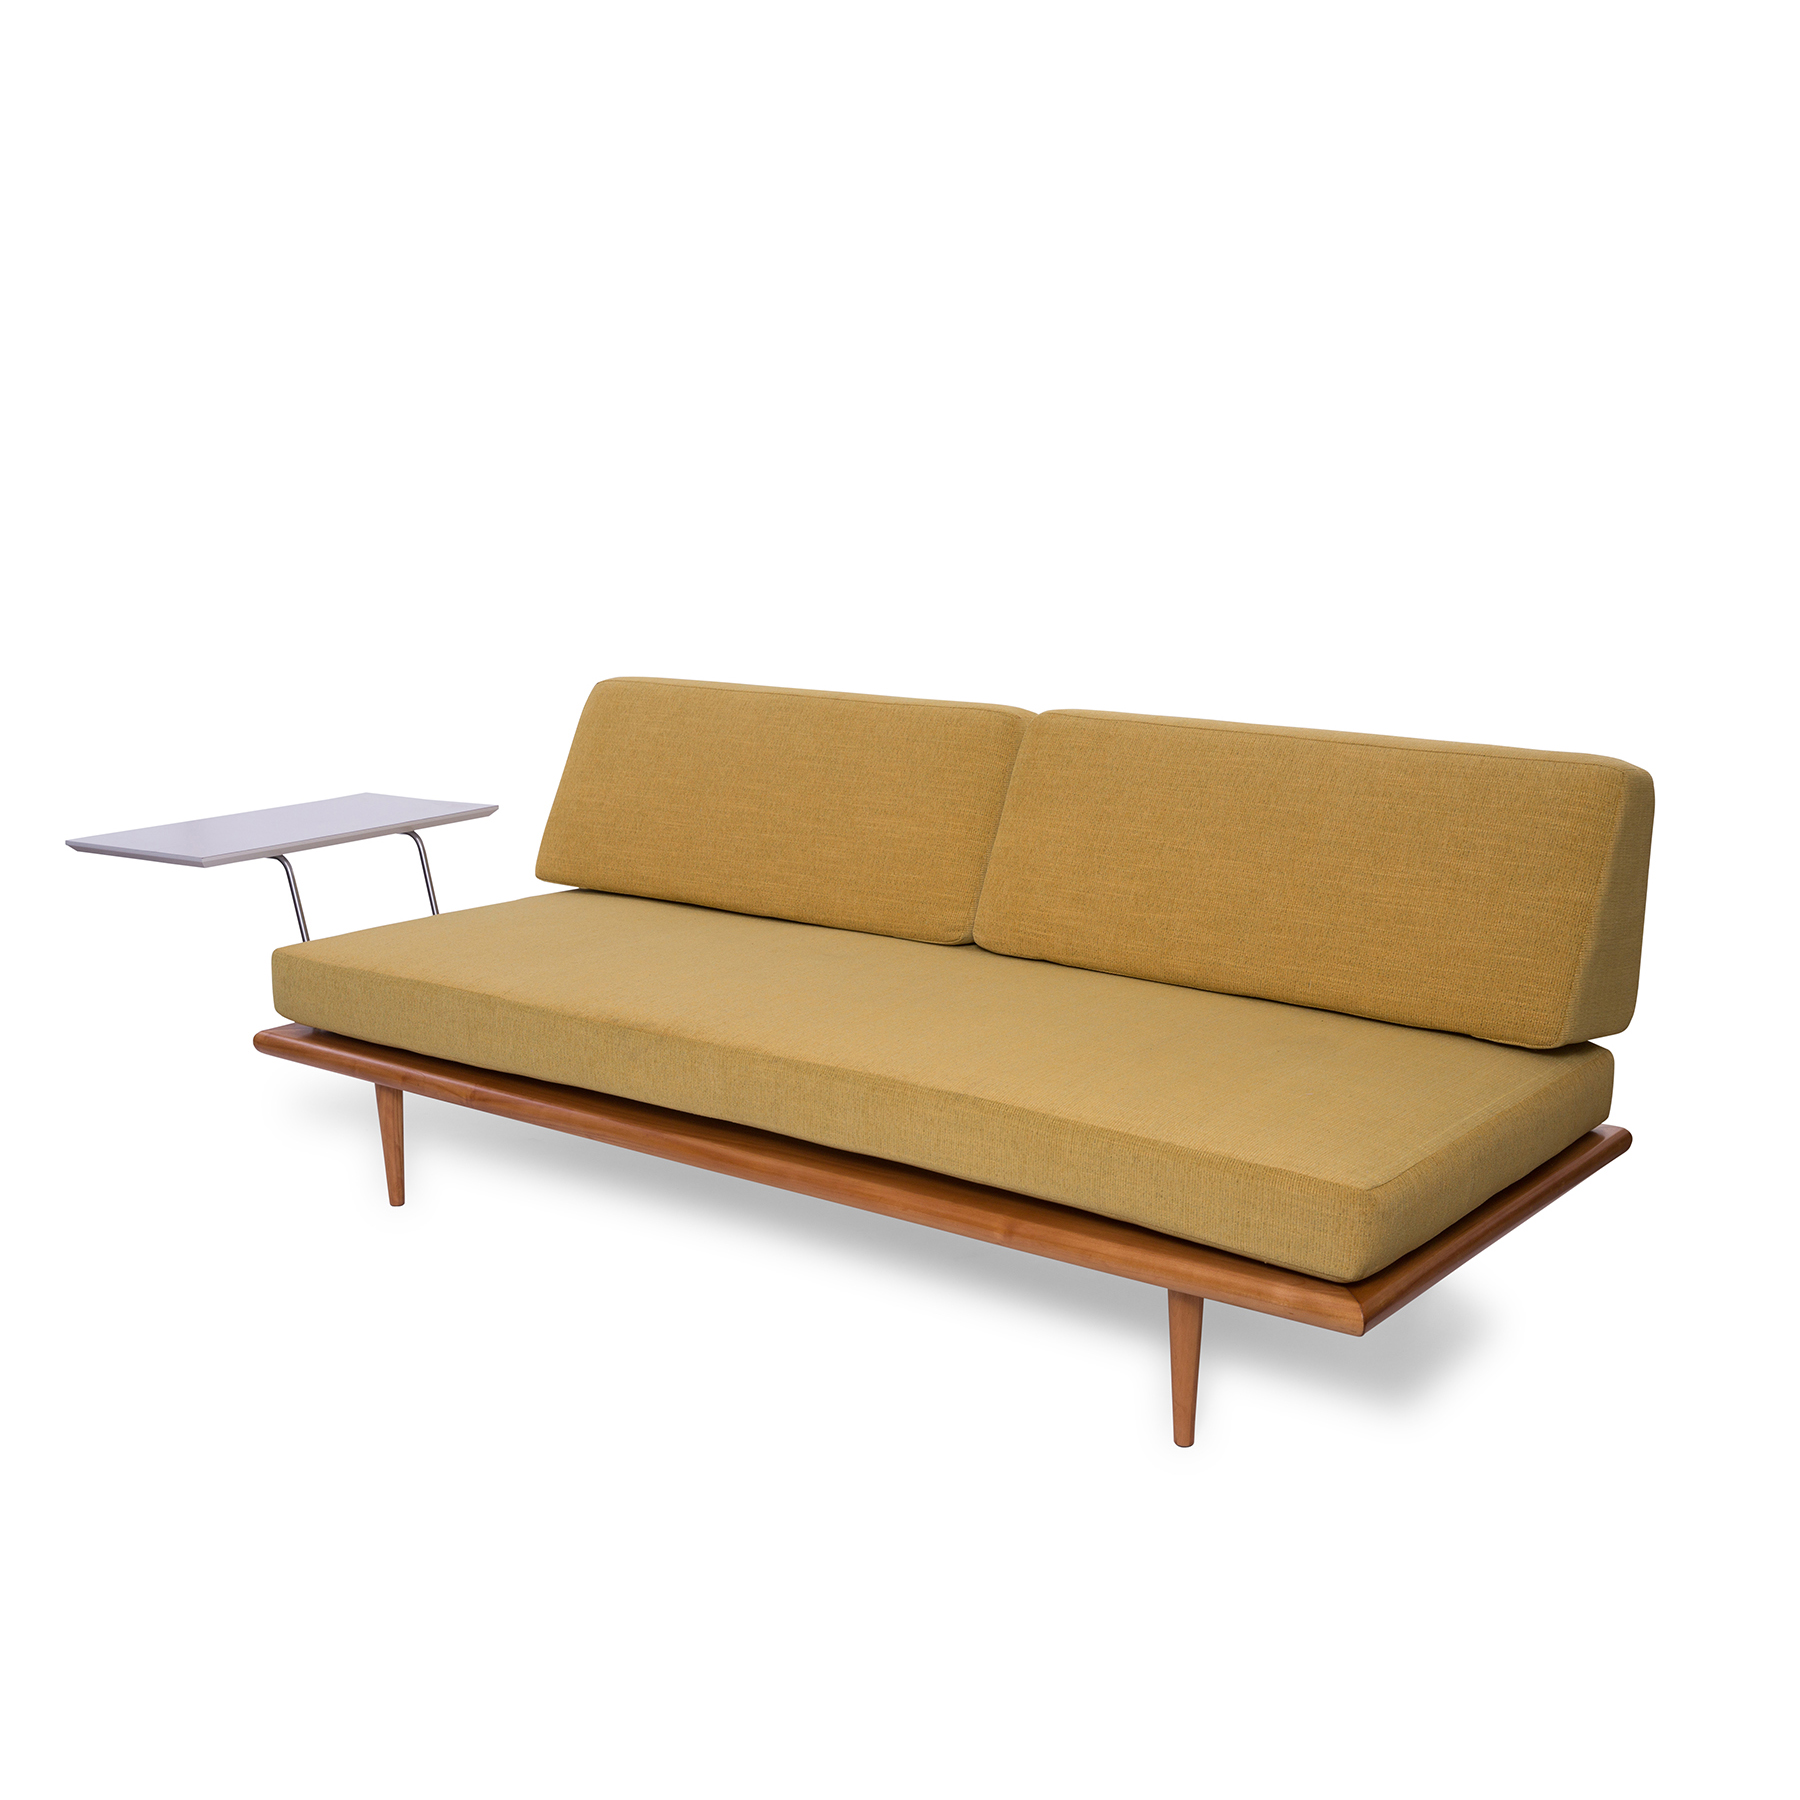 George Nelson For Herman Miller Daybed Sofa